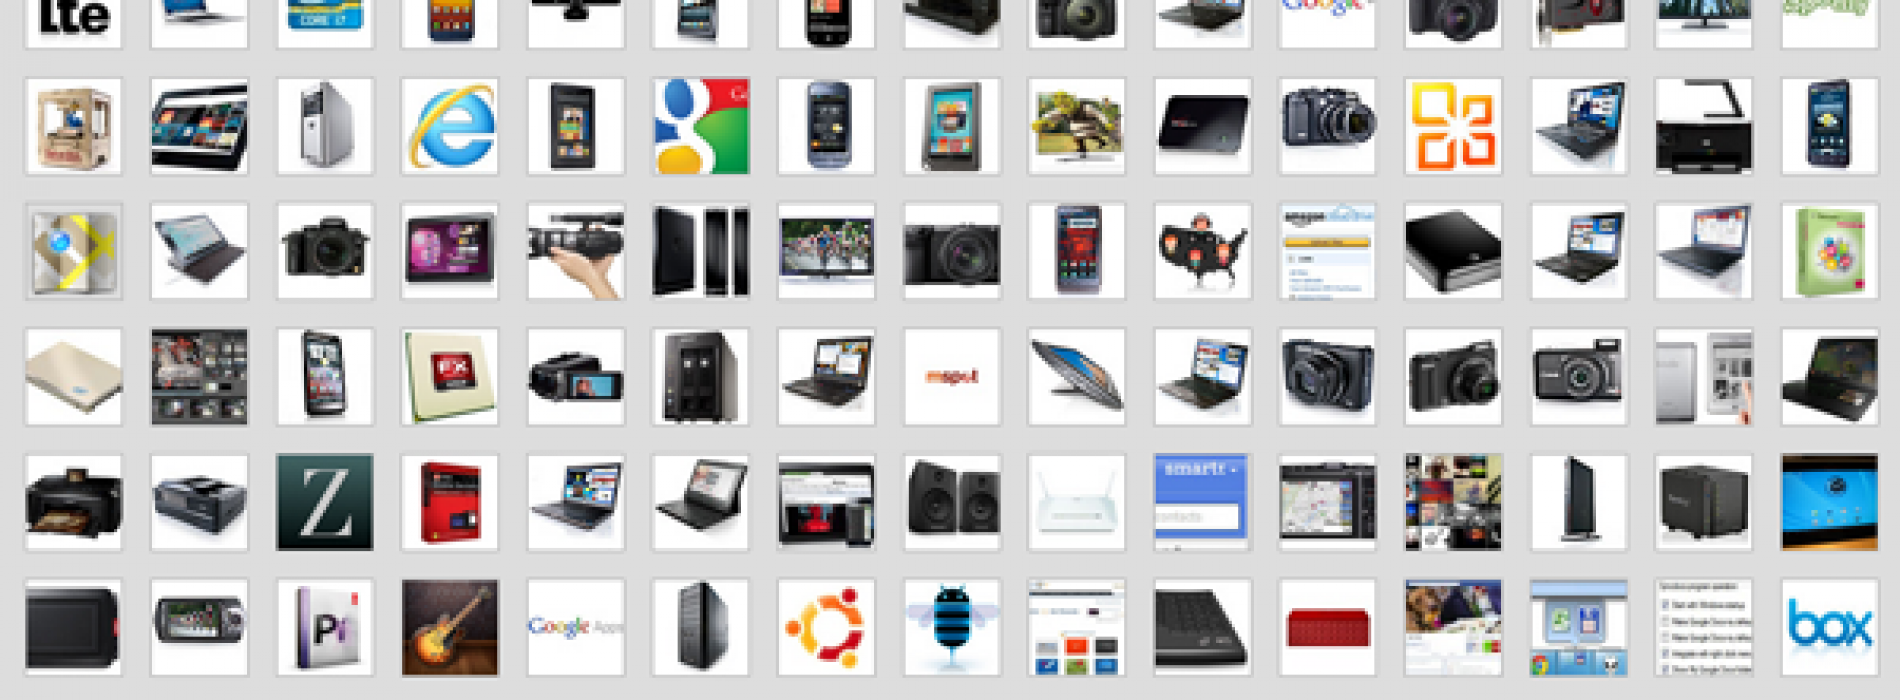 Android found all over PC World's Top 100 Best Products of 2011